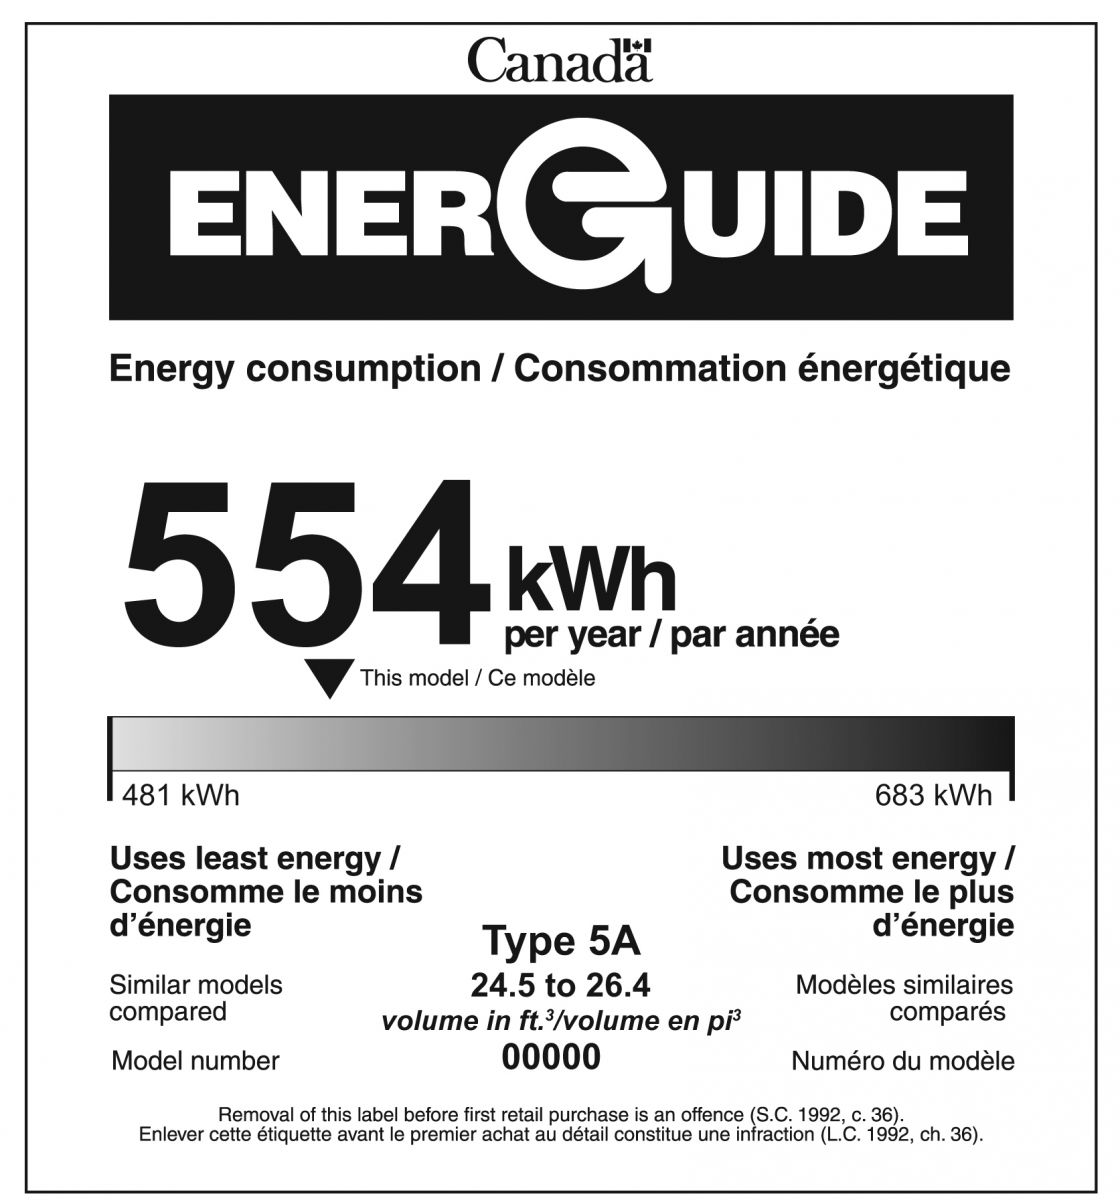 EnerGuide label for a refrigerator